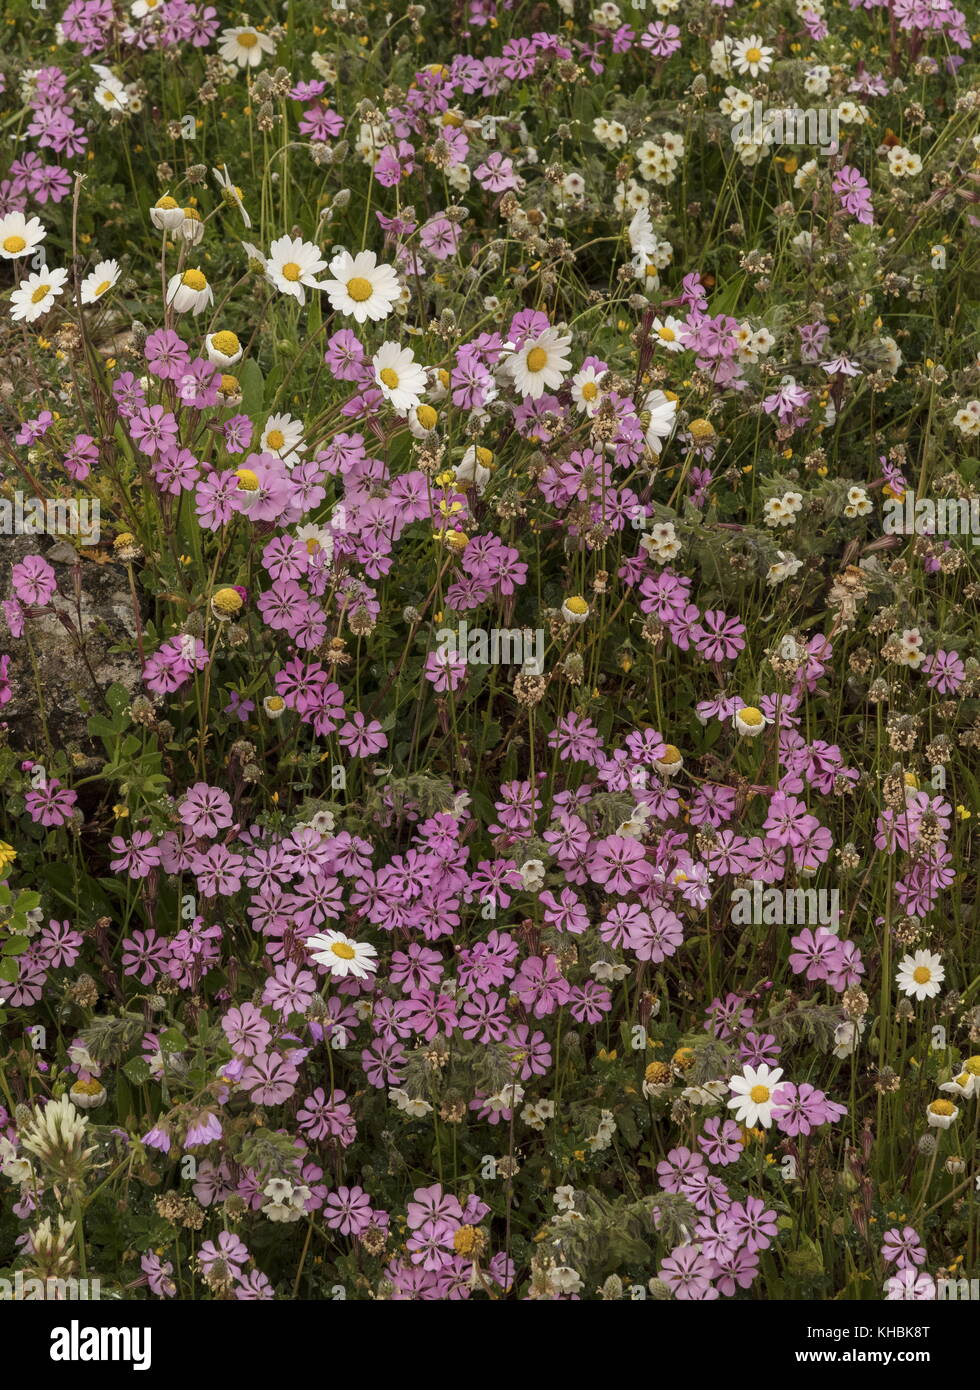 Flowers pink wildflowers greece stock photos flowers pink wildflowers greece stock images alamy - Flowers native to greece a sea of color ...